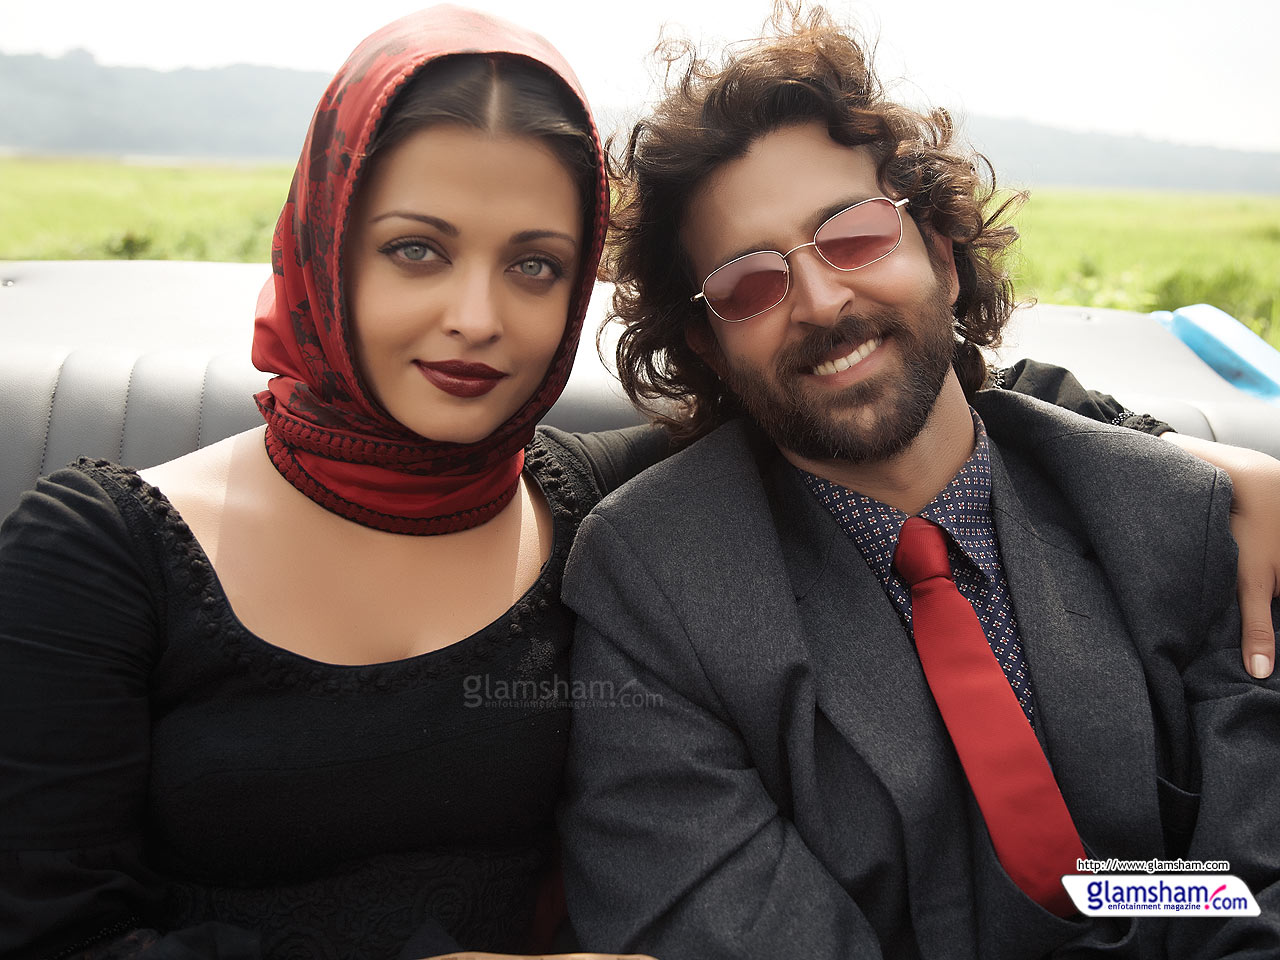 http://2.bp.blogspot.com/_JUw2aRvPUwc/TJ1-NBEy0WI/AAAAAAAAX7g/r4PACpQ1cr4/s1600/Aishwarya+Rai+%26+Hrithik+Roshan+next+movie+%27Guzaarish%27+Wallpapers+02.jpg